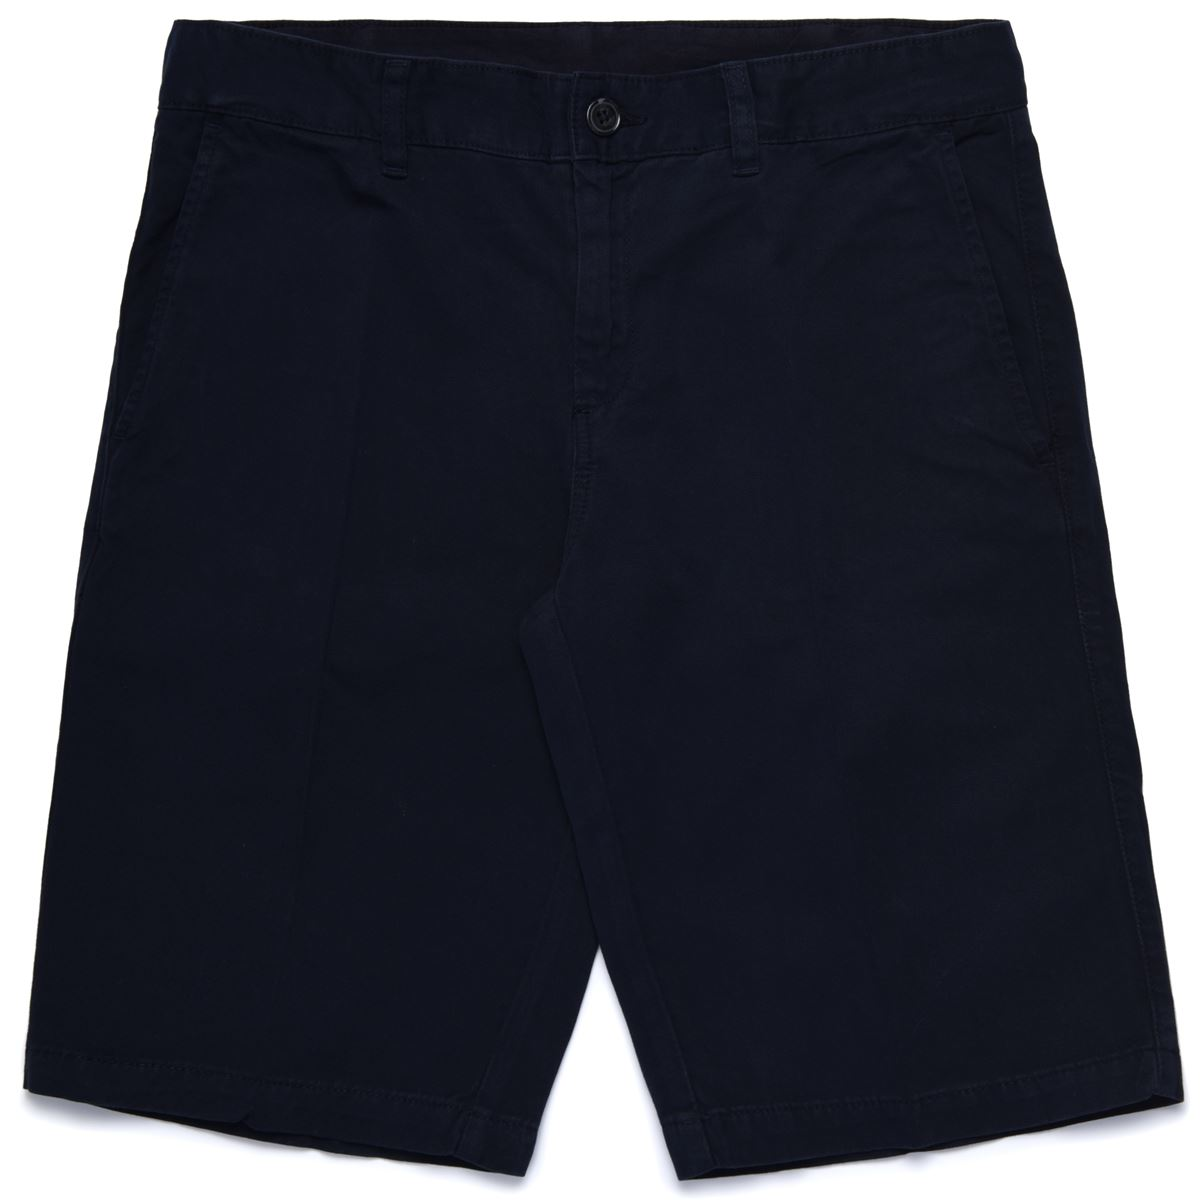 Robe di Kappa Shorts ORIS CHINO Man